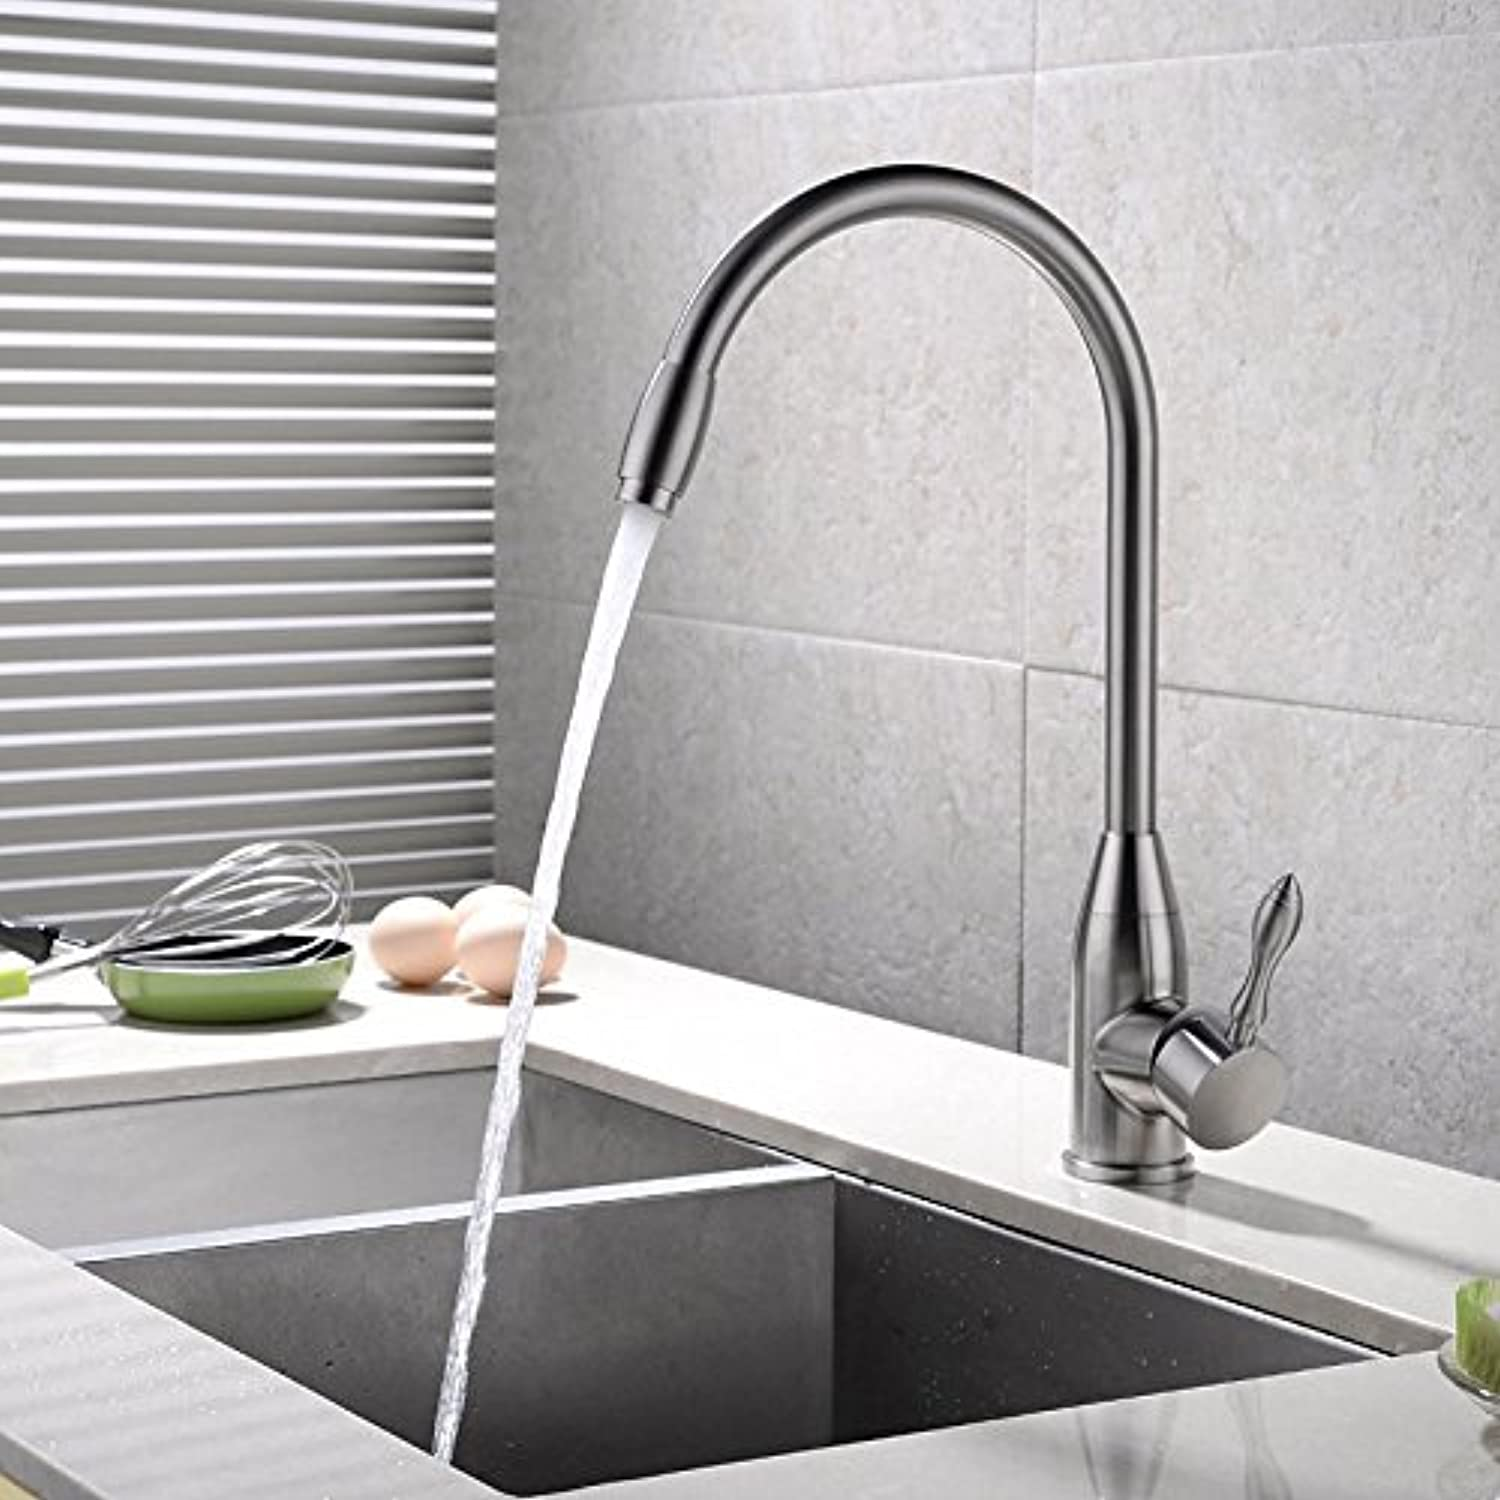 Commercial Single Lever Pull Down Kitchen Sink Faucet Brass Constructed Polished Kitchen Stainless Steel Faucet Sink Hot and Cold Bathroom Basin redating Sink Brushed